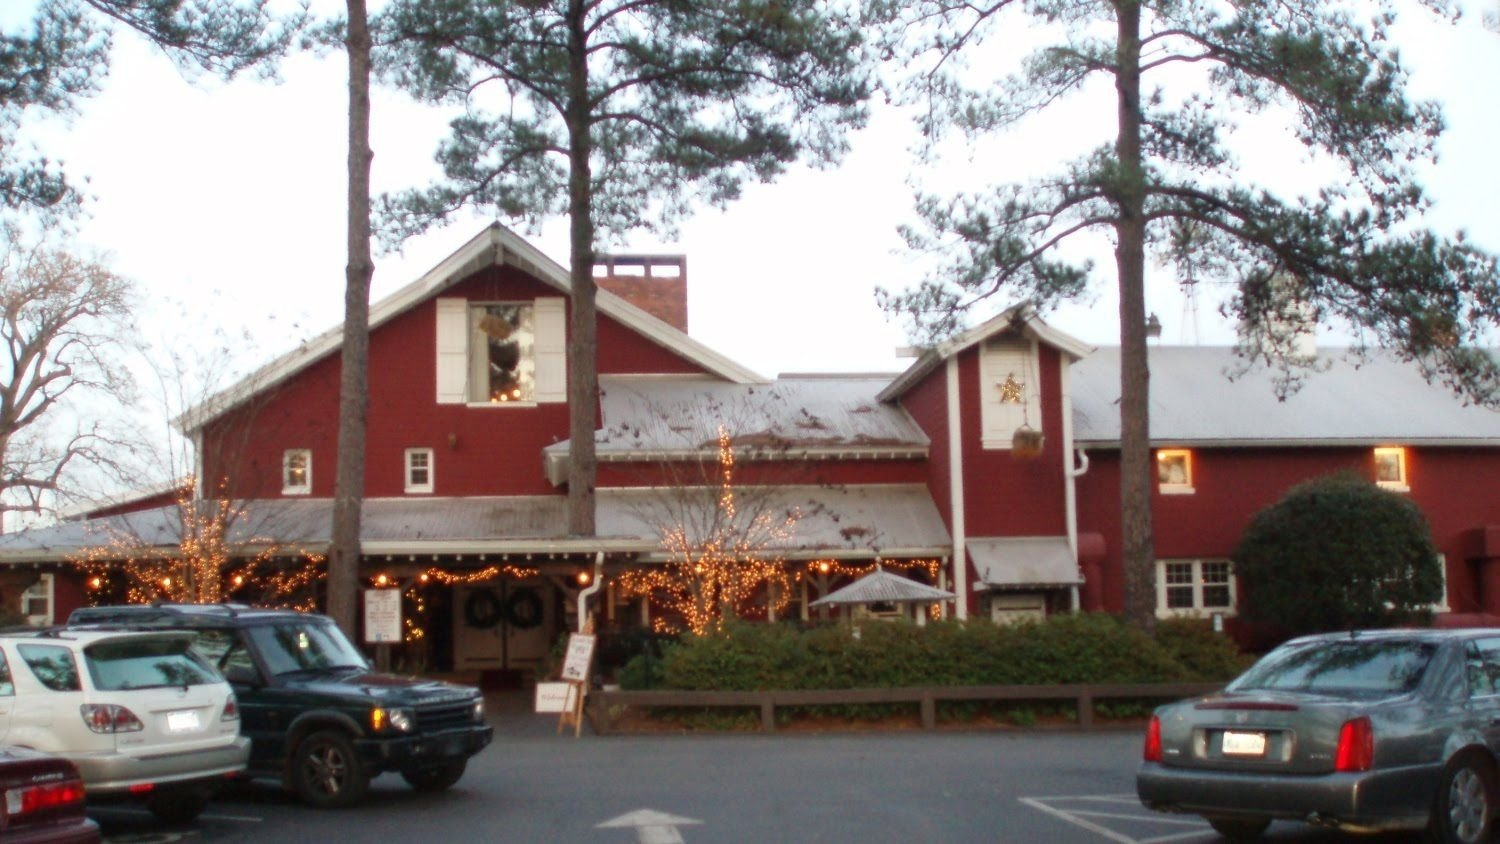 10 Fashionable Date Ideas In Raleigh Nc angus barn restaurant raleigh nc raleigh nc points of interest